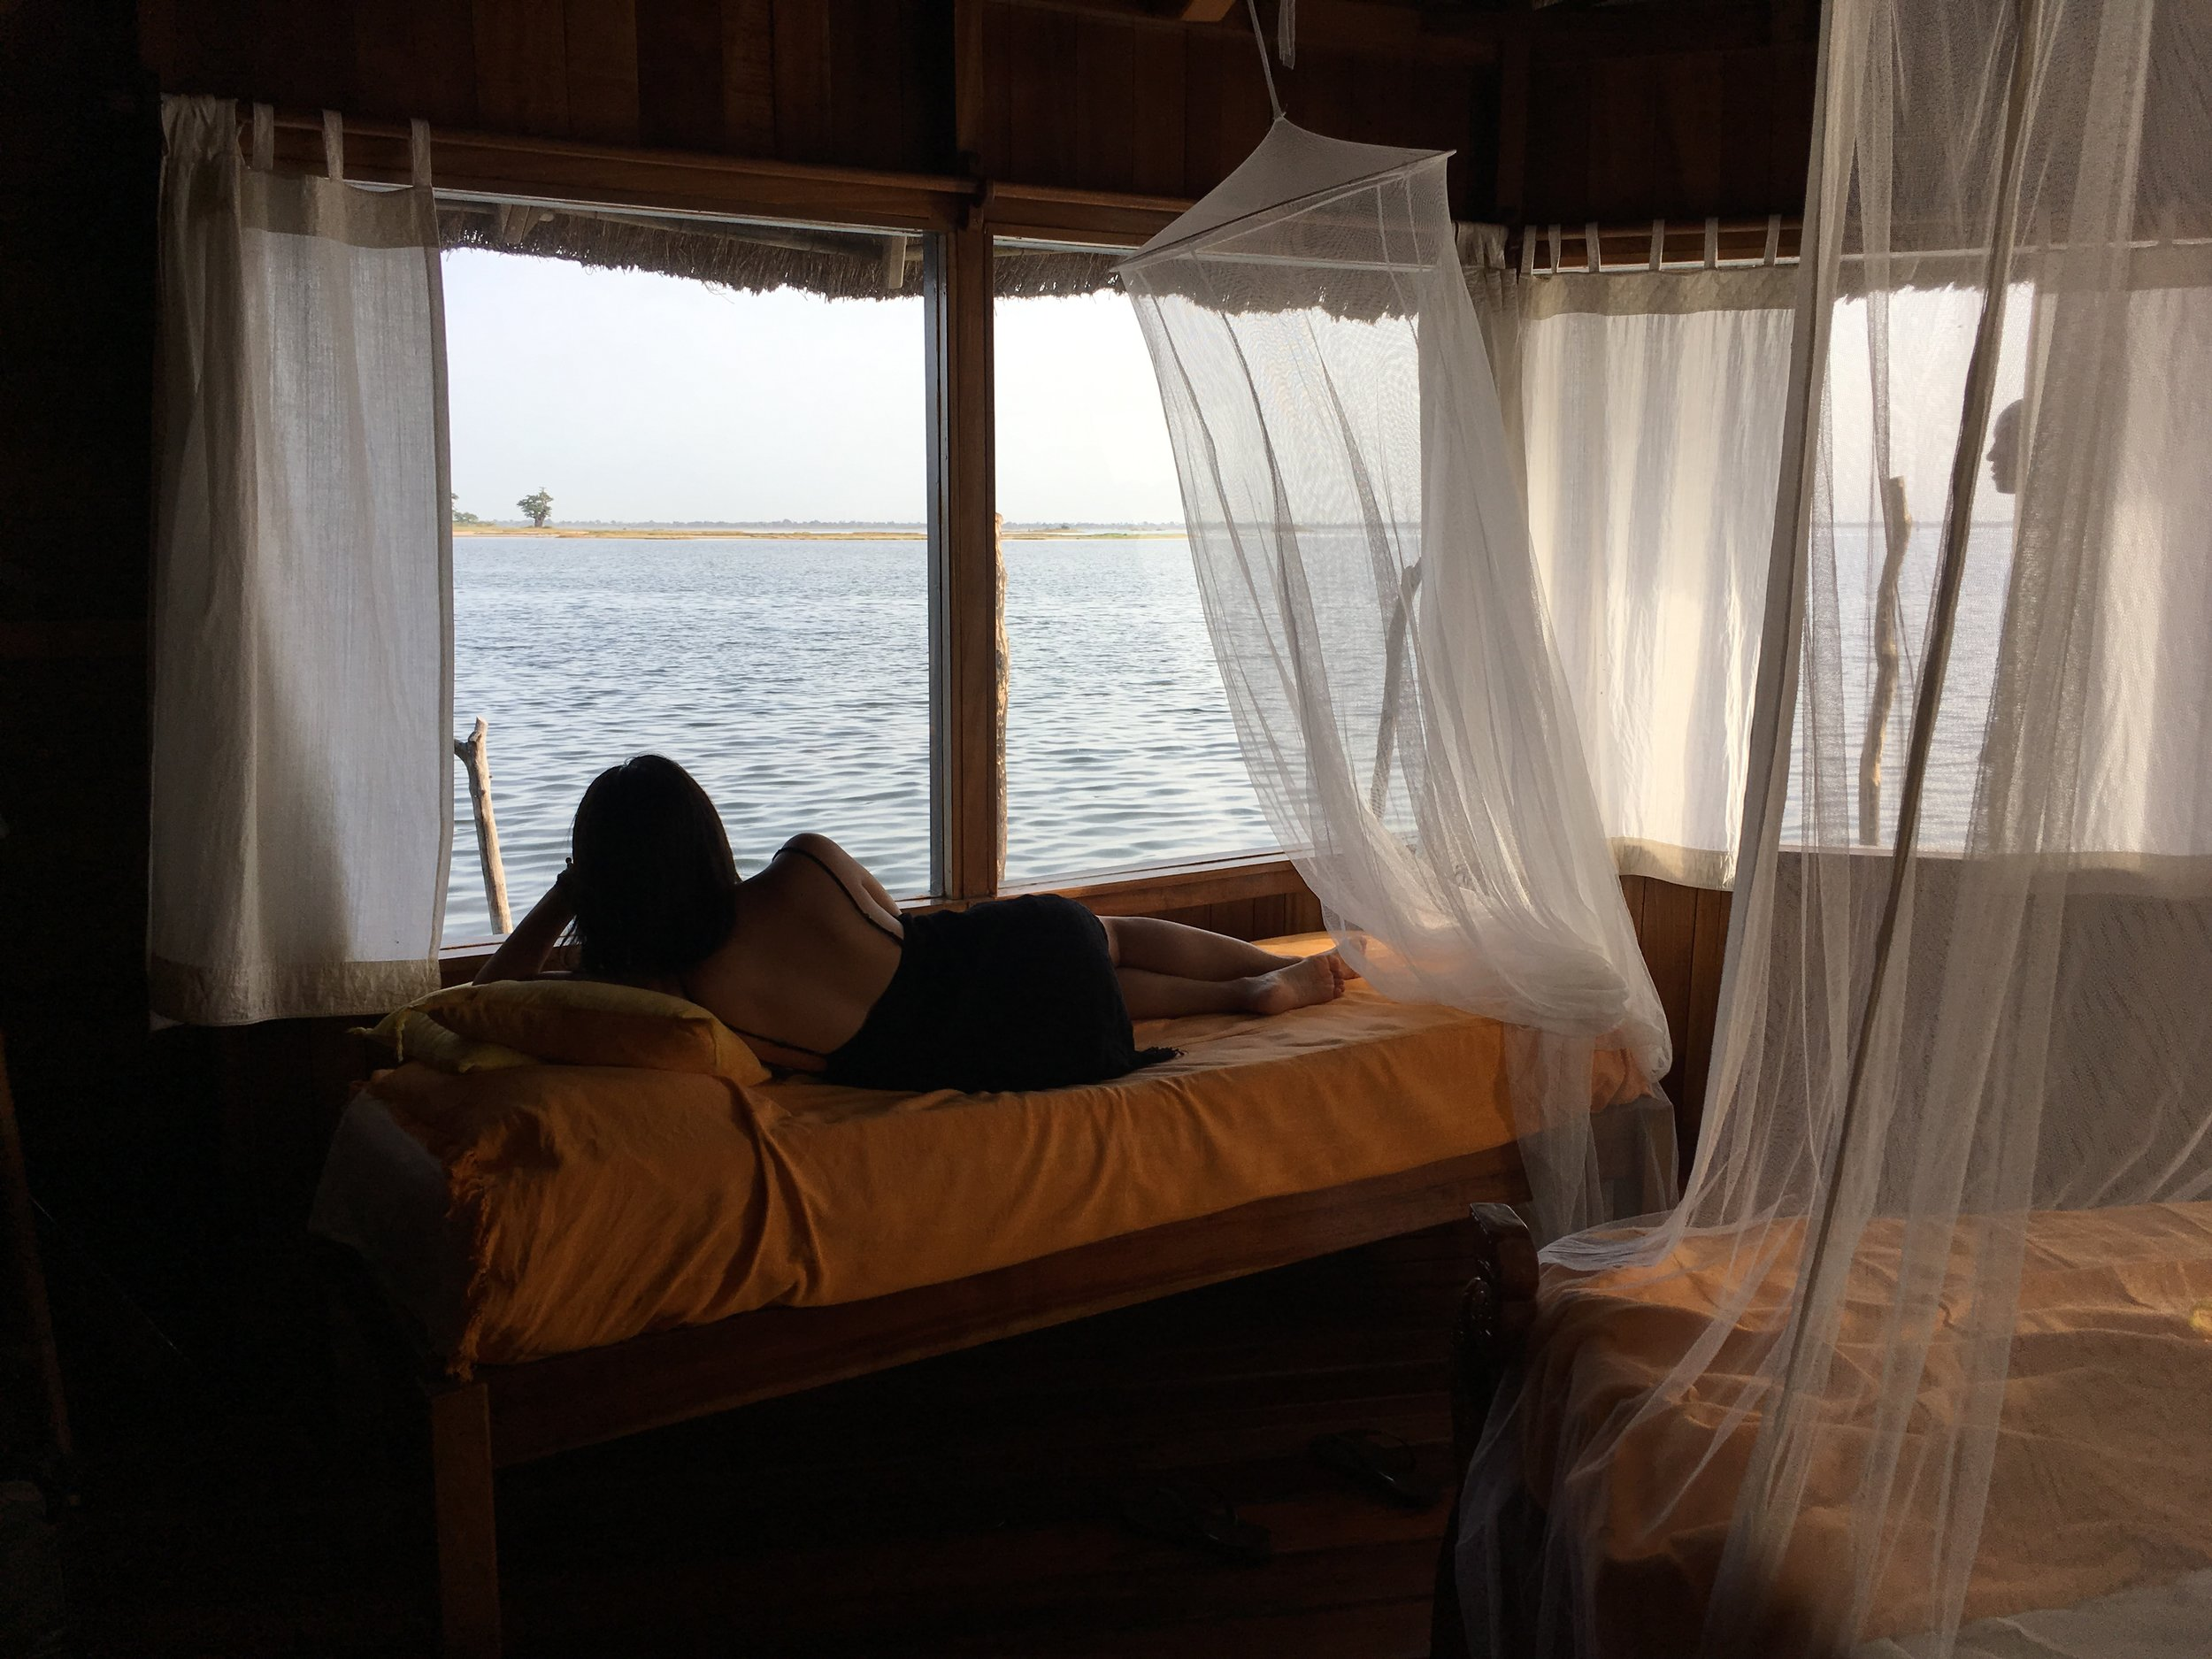 The view of the river delta from the bungalow.